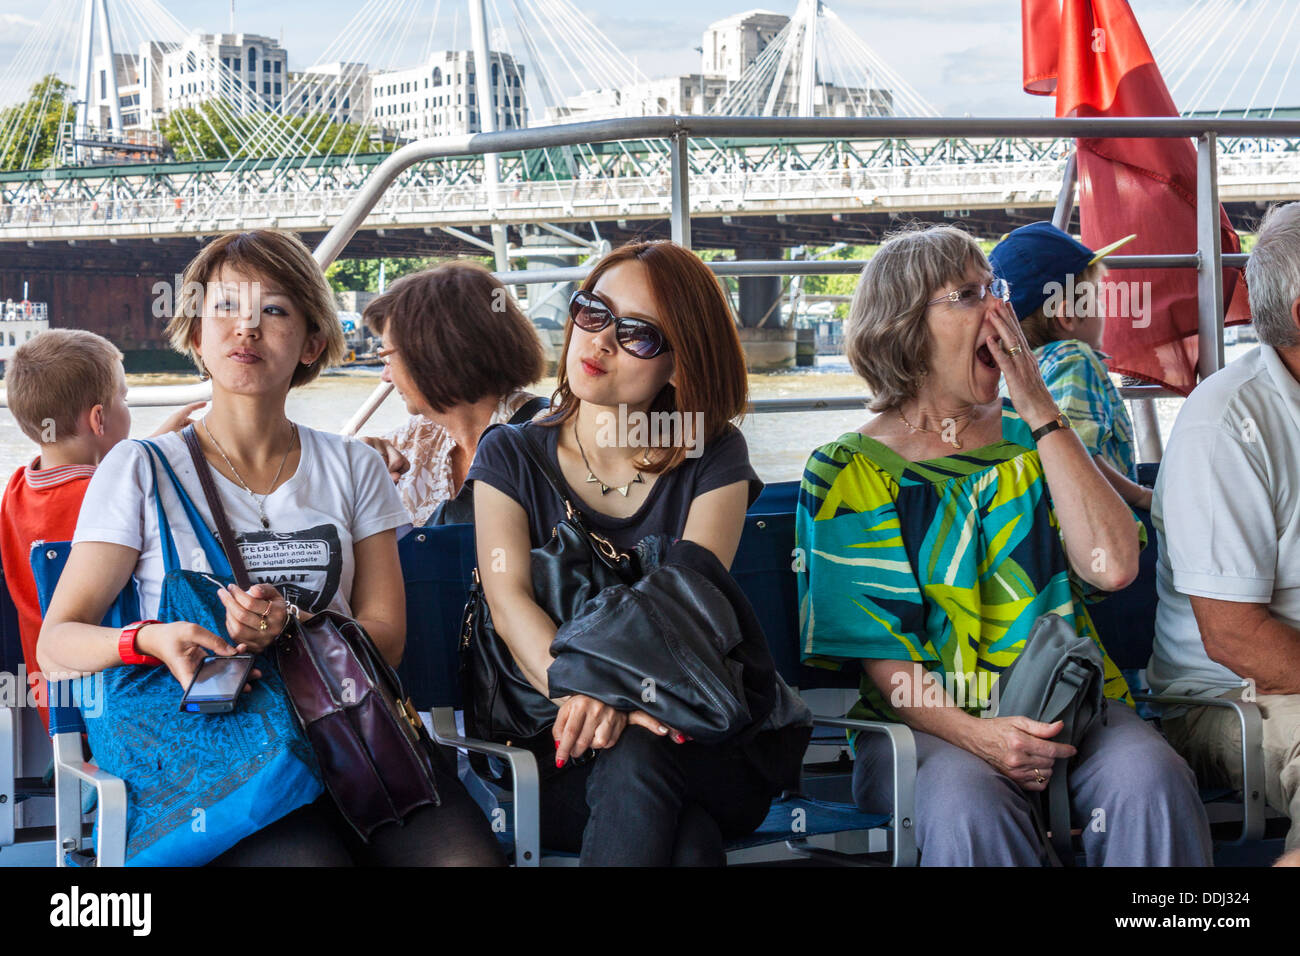 Sightseers on Thames Riverboat - Stock Image